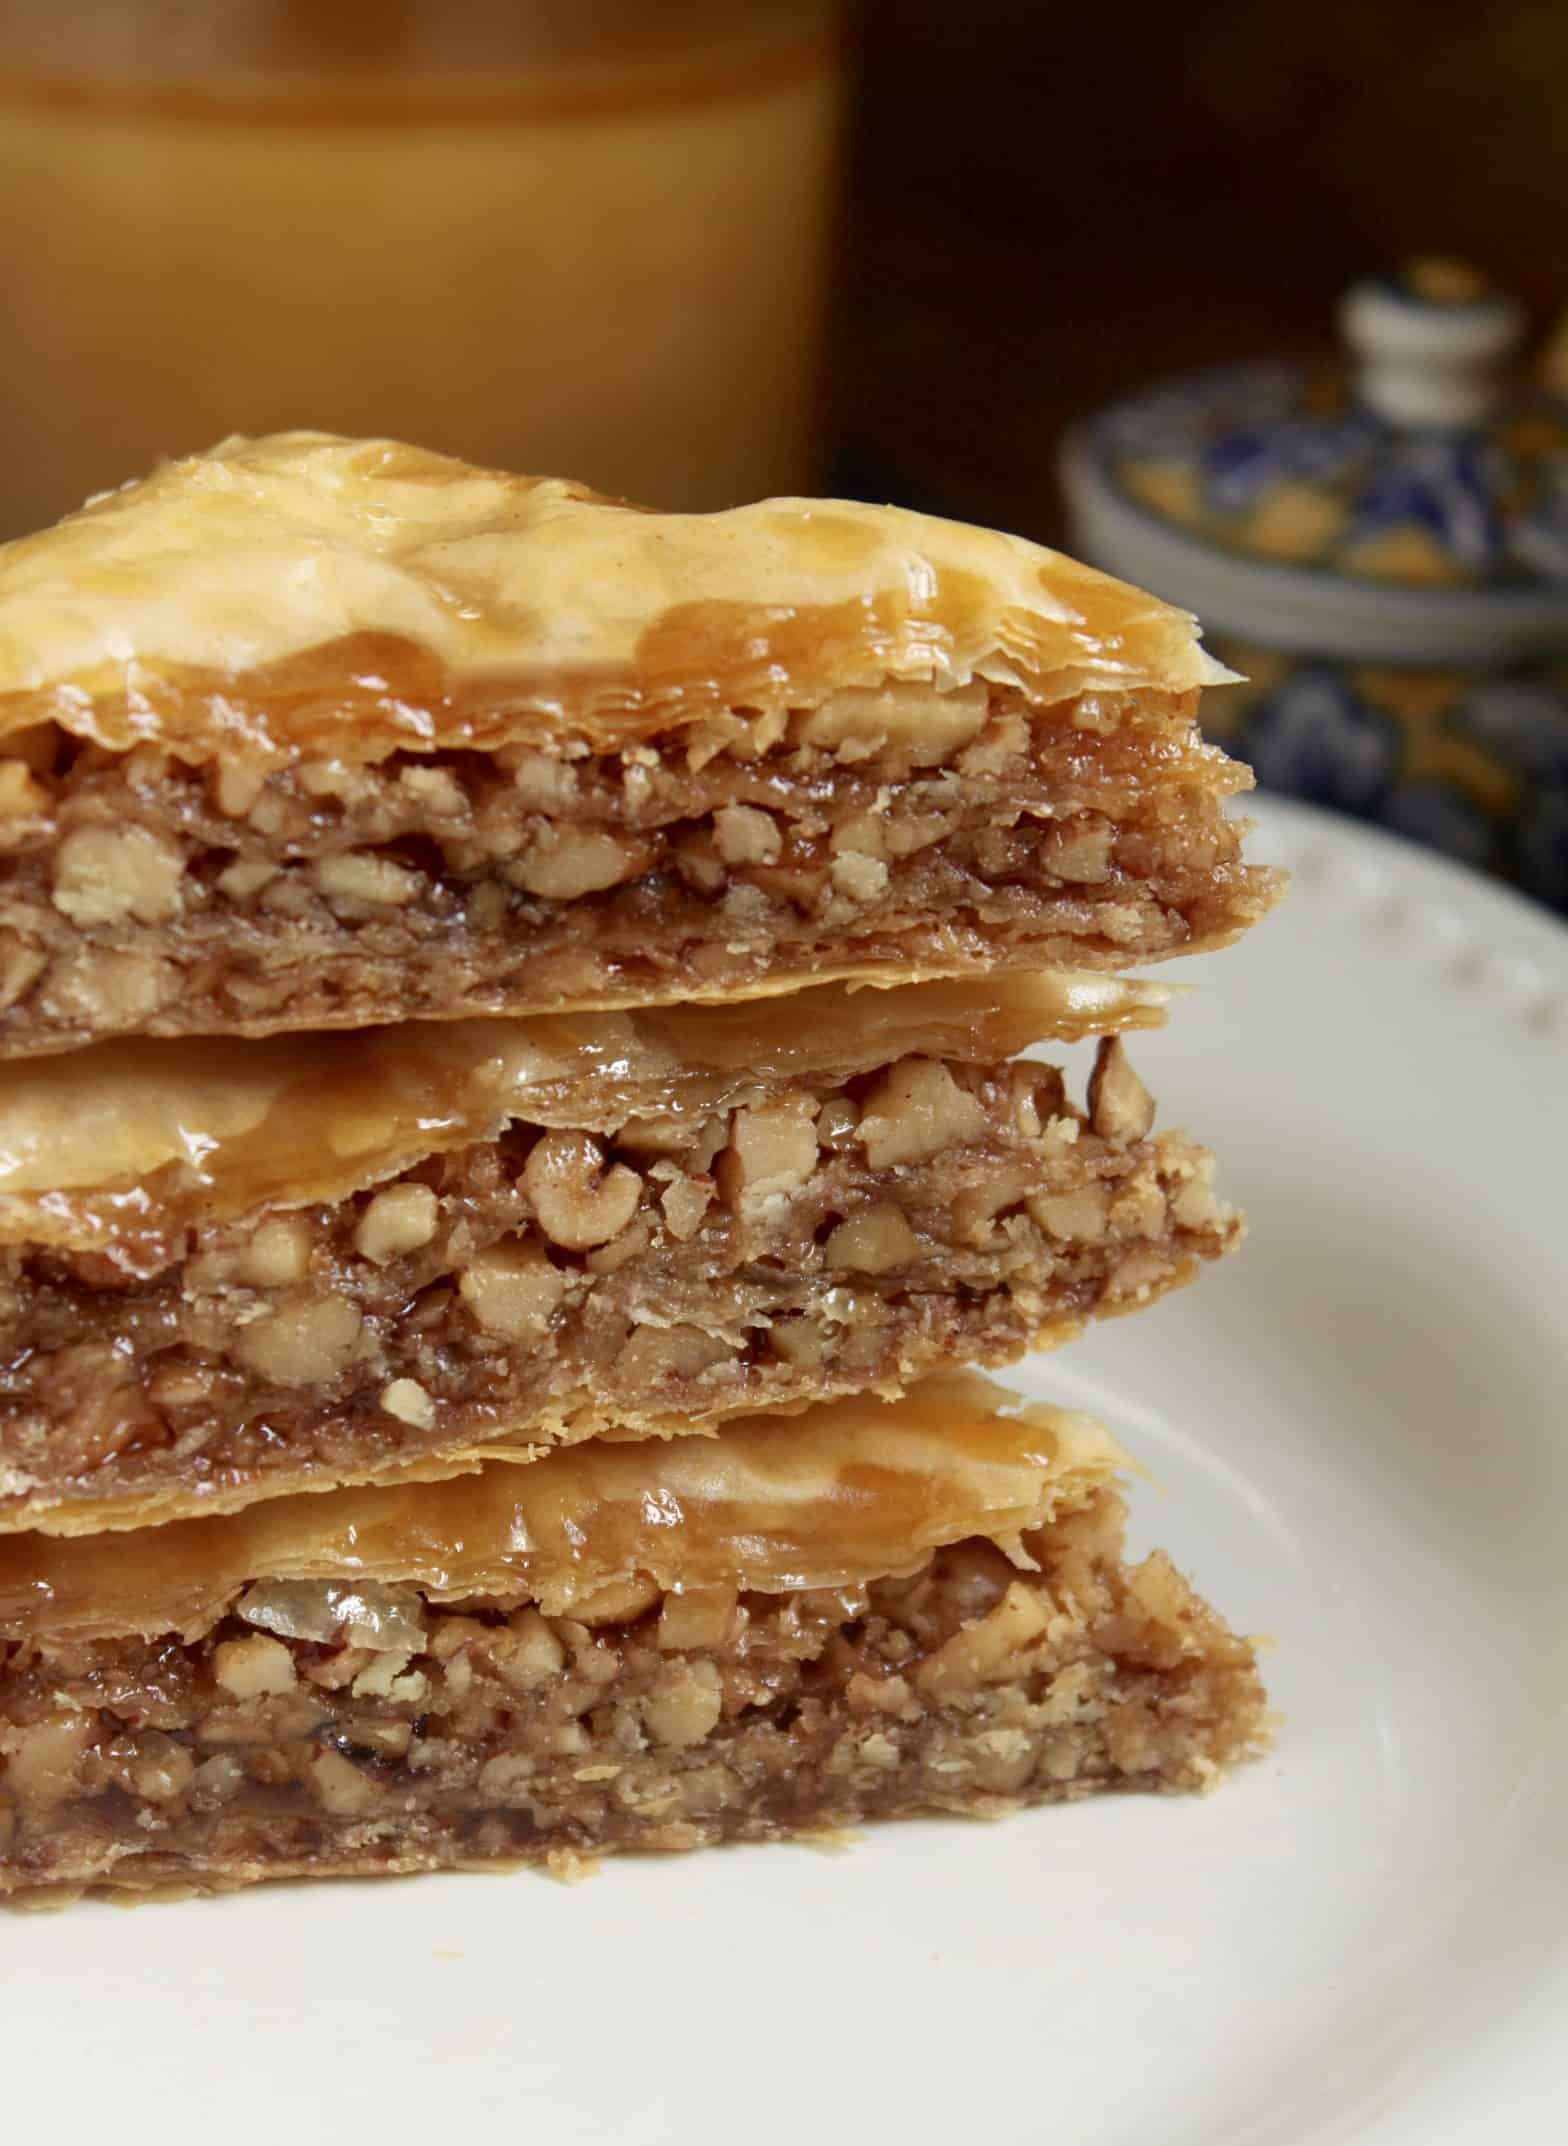 3 pieces of Honey Walnut Baklava stacked on top of each other